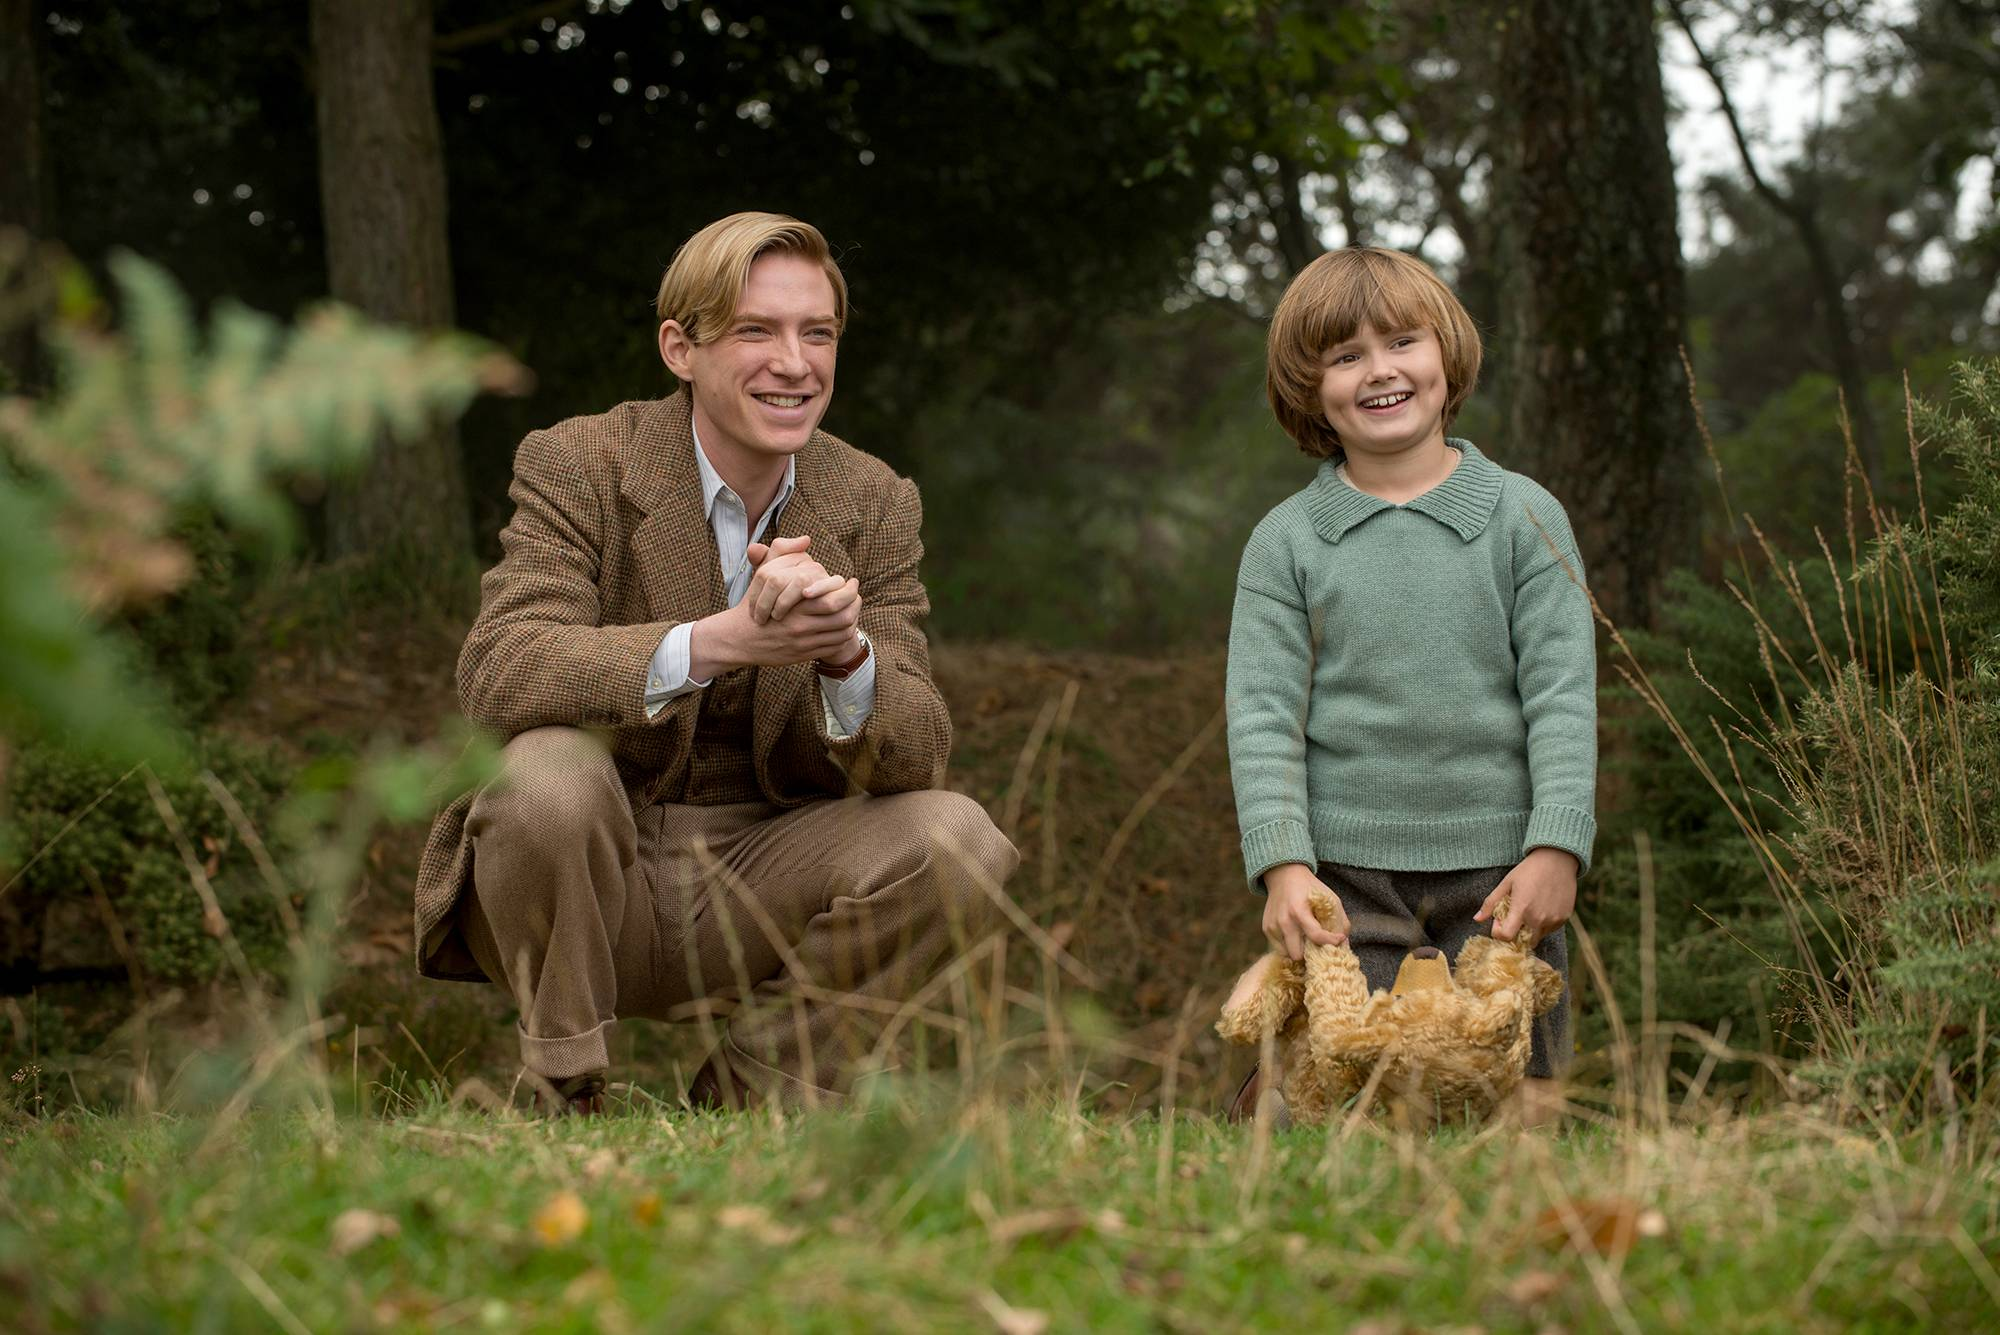 """Winnie-the-Pooh"" author A.A. Milne (Domhnall Gleeson) bases his best-sellers on the ideas of his own son (Will Tilston) in the biopic ""Goodbye Christopher Robin."""